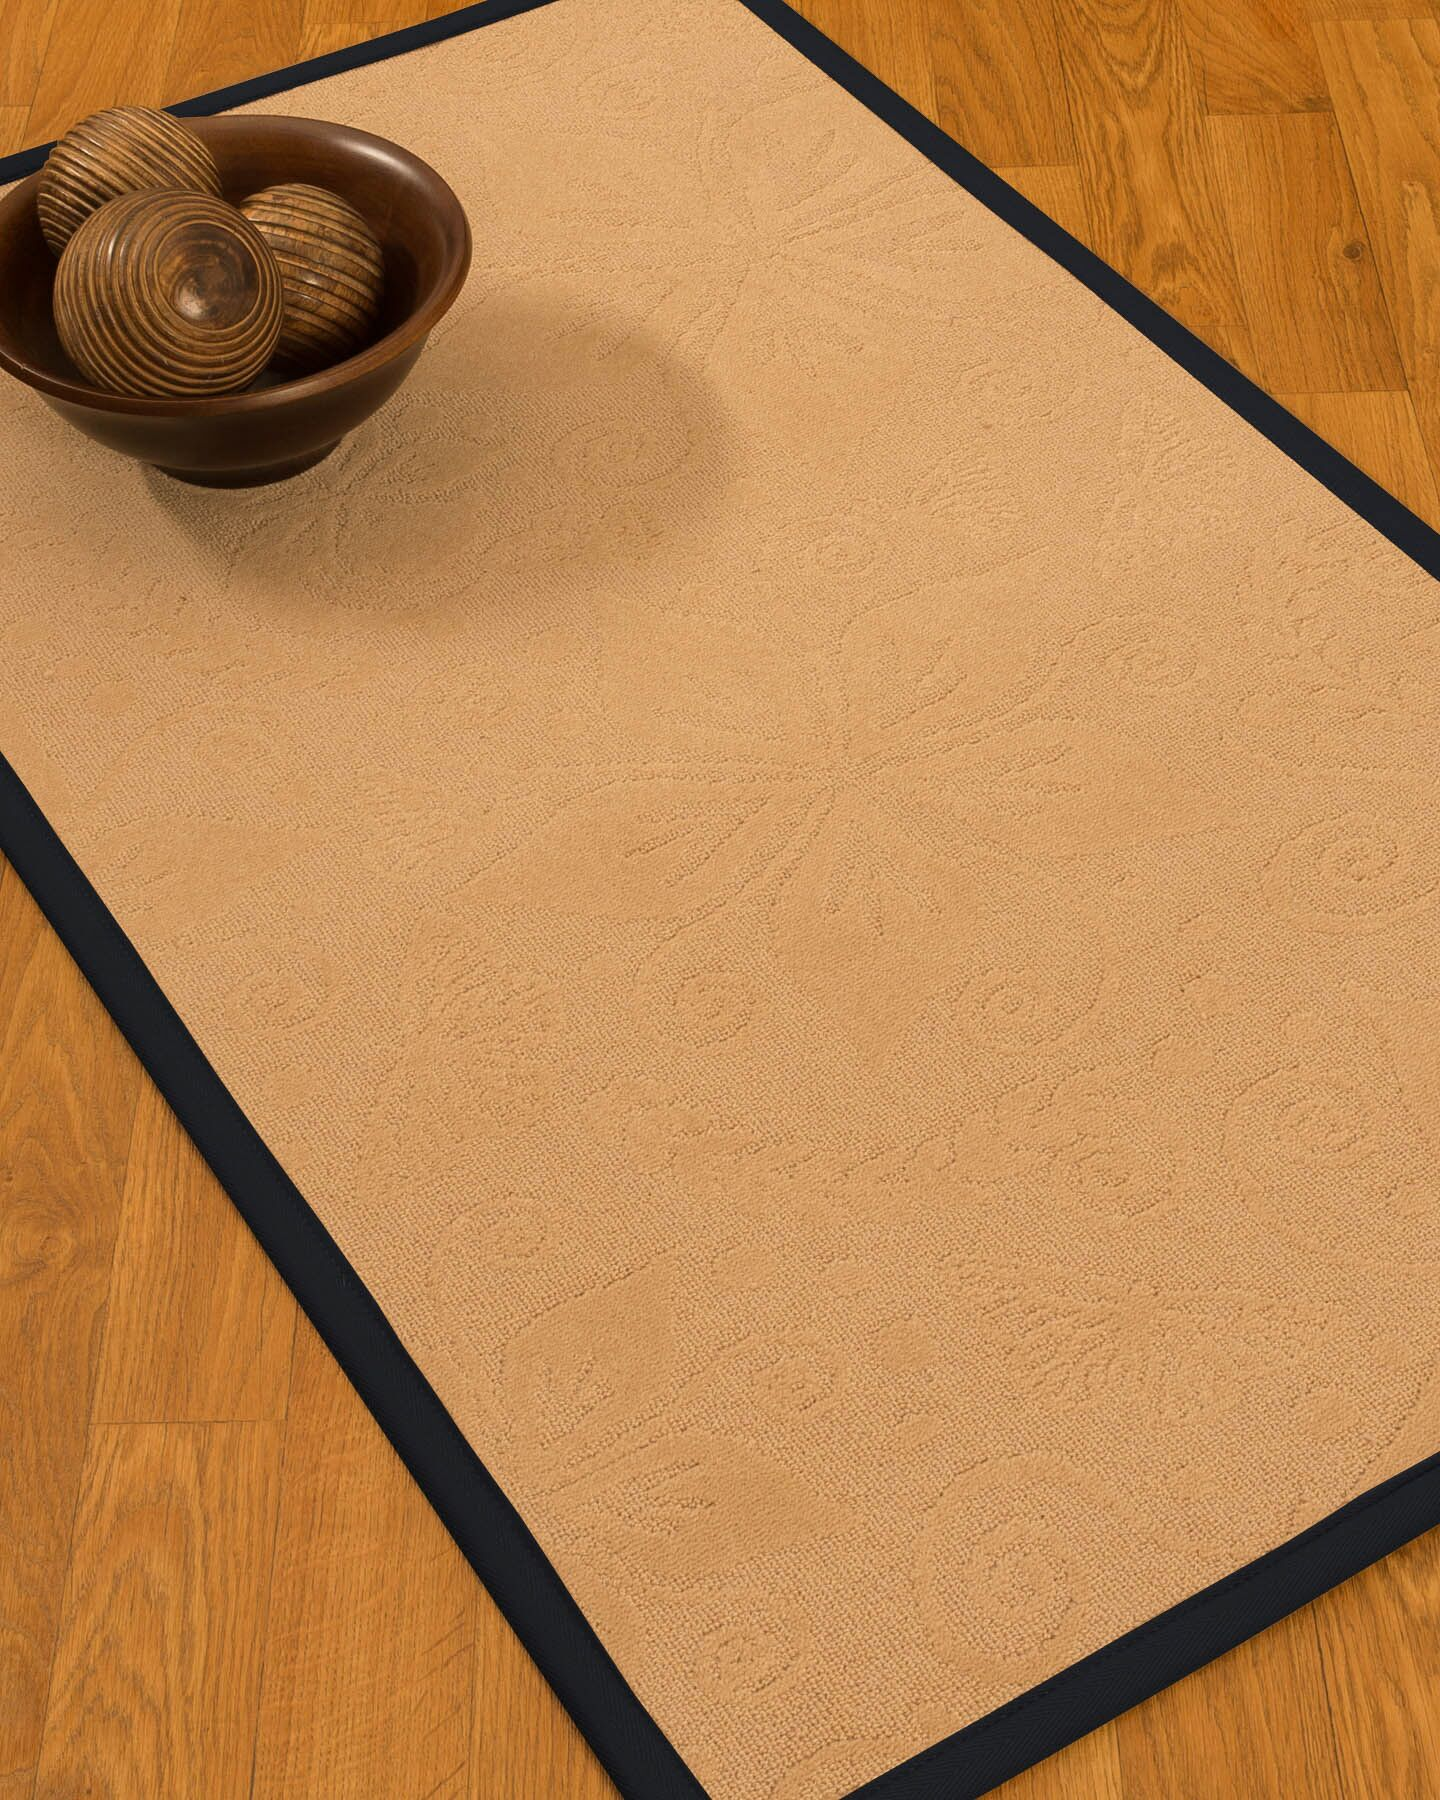 Vanmeter Border Hand-Woven Wool Beige/Midnight Blue Area Rug Rug Pad Included: No, Rug Size: Runner 2'6